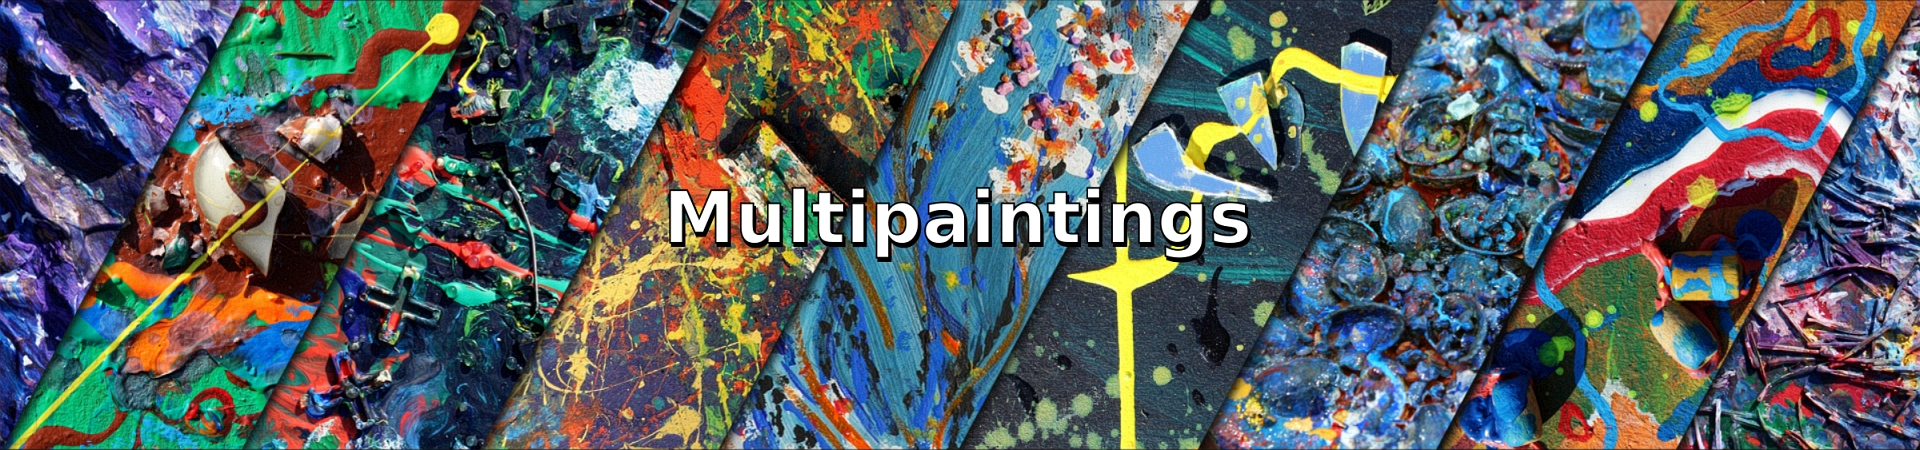 Multipaintings